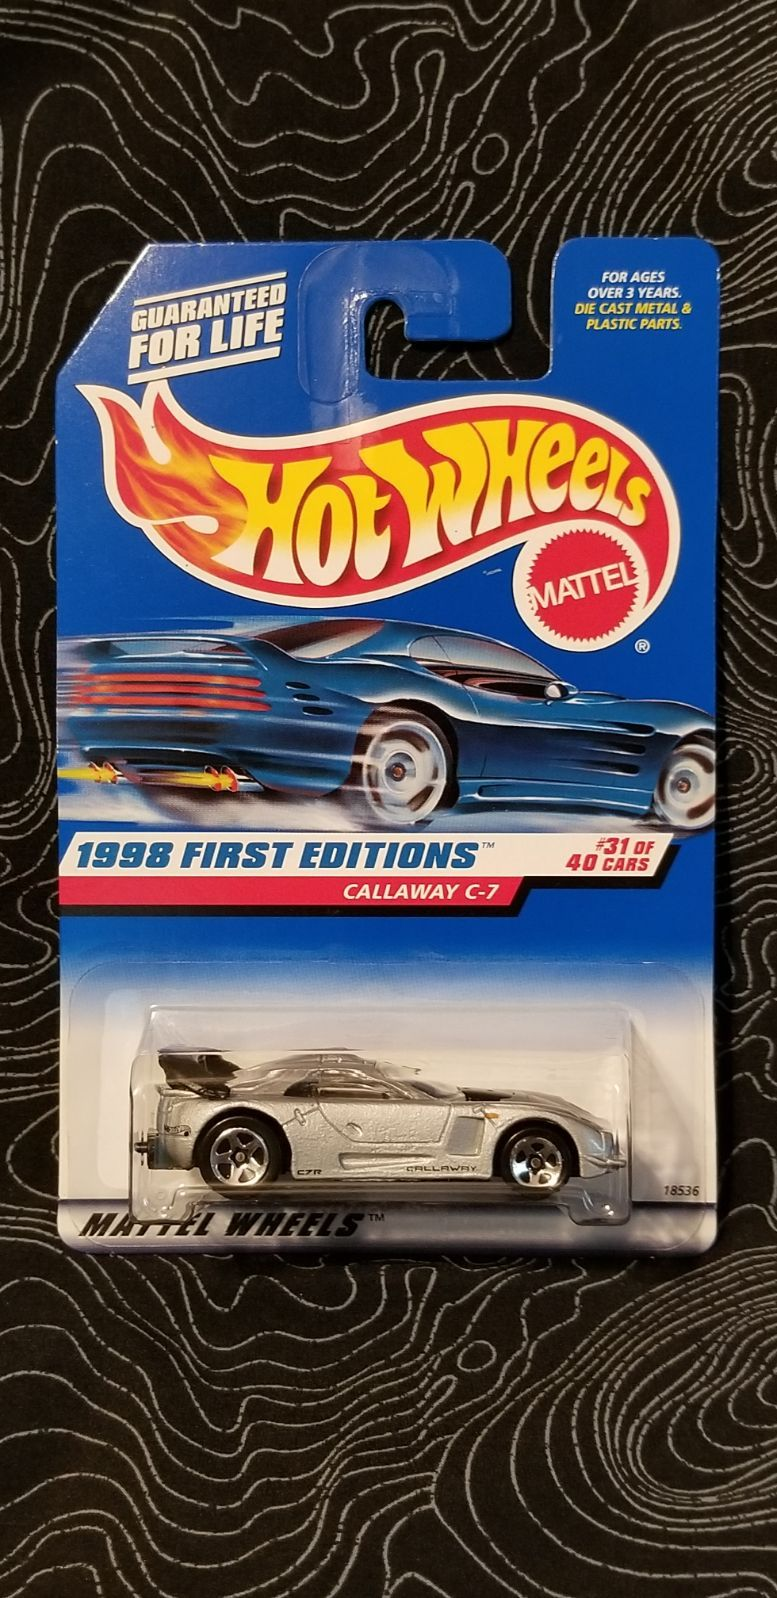 Hot Wheels 1998 First Editions Callaway C 7 Brand New And In Perfect Condition I Ship Fast Check My Profile For More Rar Hot Wheels Hot Wheels Cars Mattel